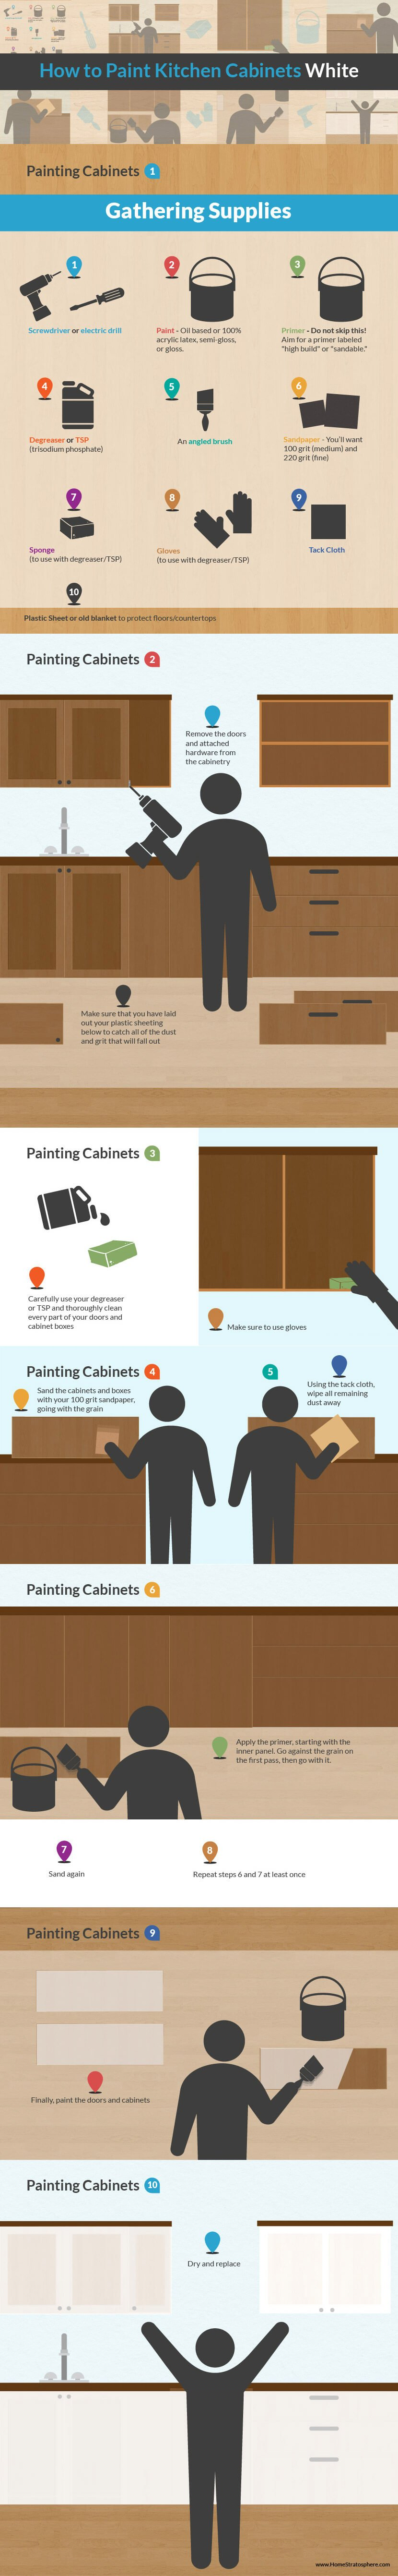 Infographic - How to paint kitchen cabinets white